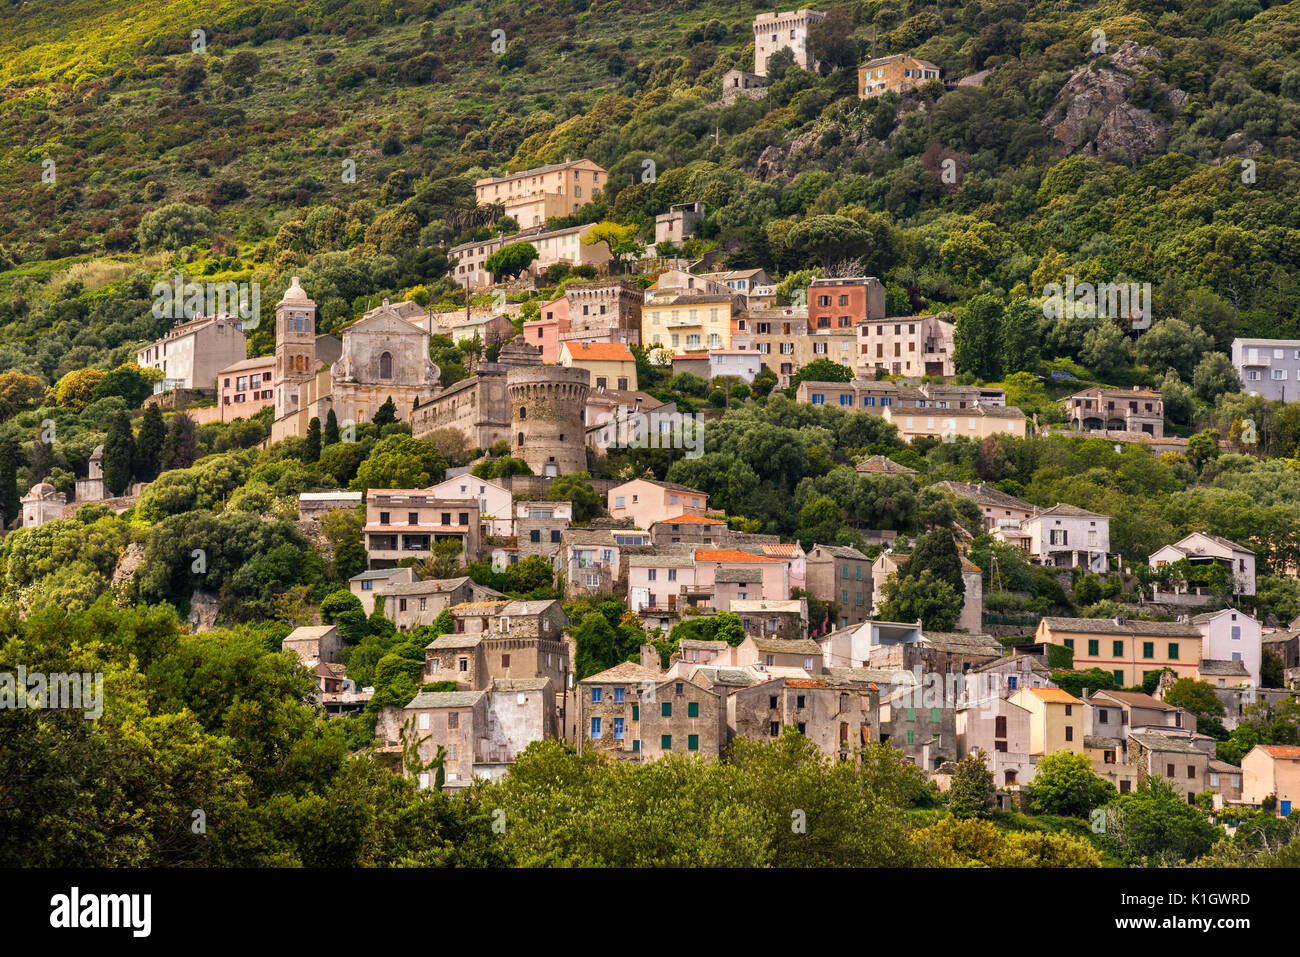 Hill town of Bettolacce, in commune of Rogliano, Cap Corse, Corsica, France - Stock Image